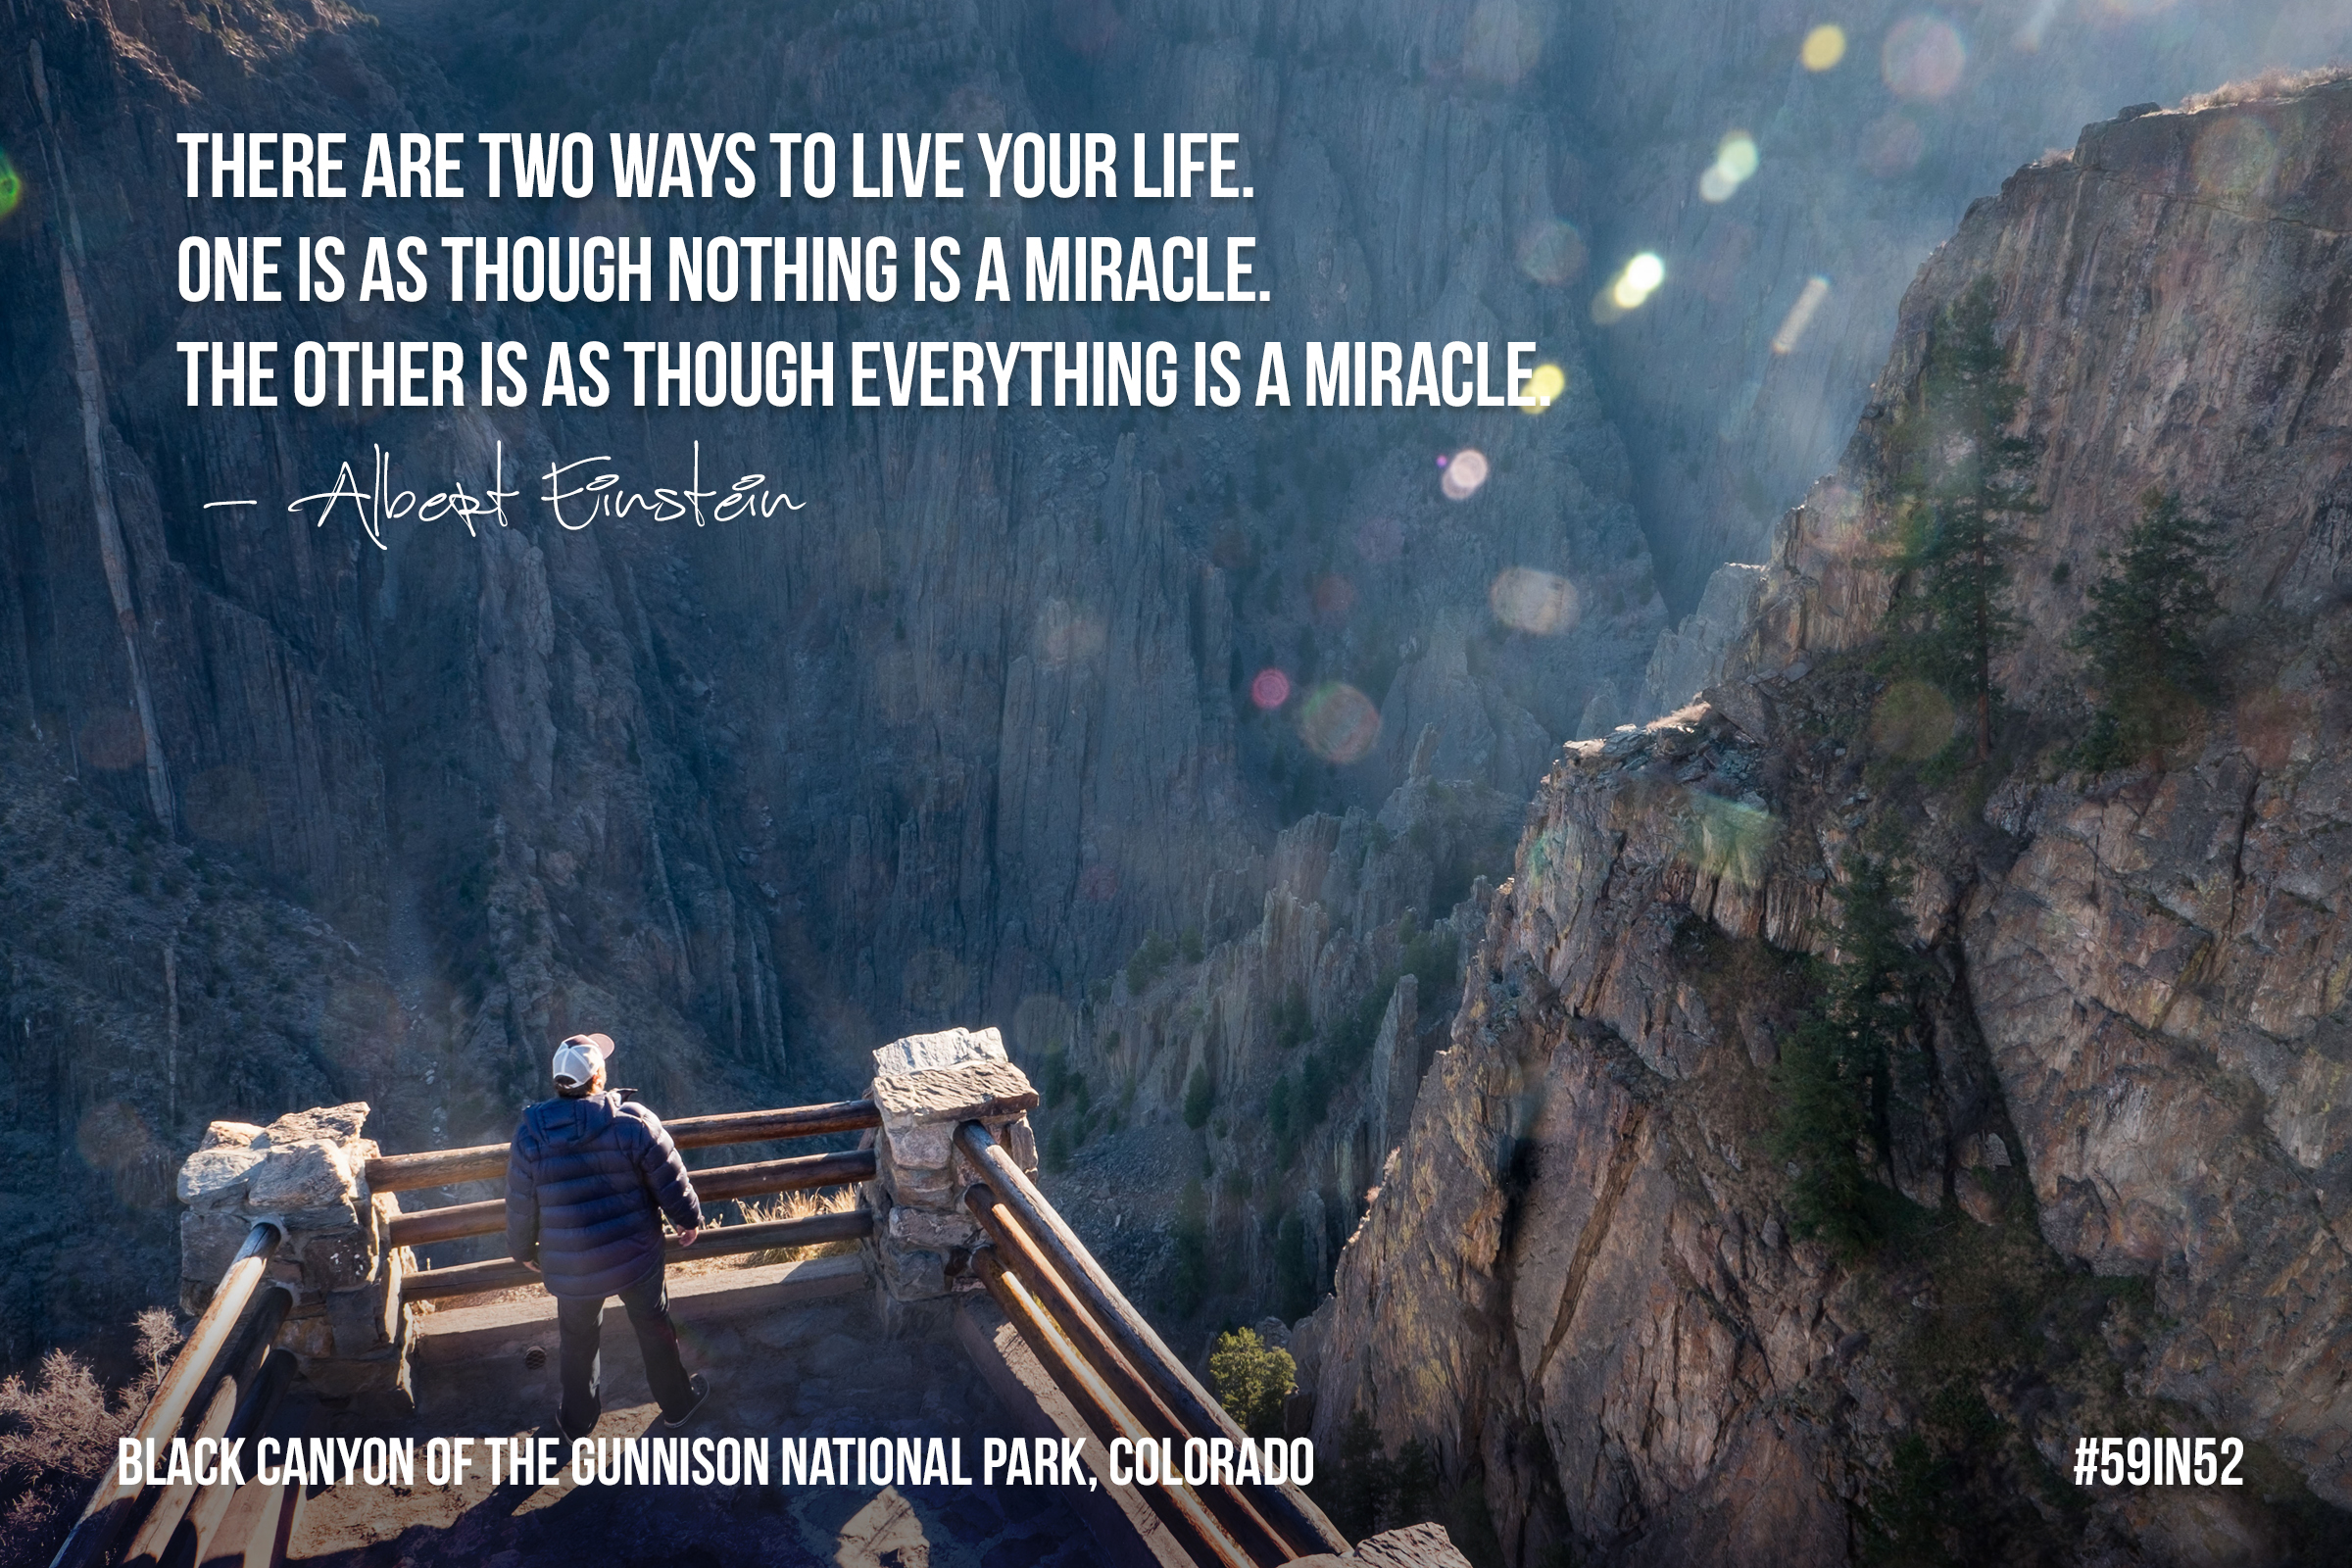 """There are two ways to live your life. One is as though nothing is a miracle. The other is as though everything is a miracle."" - Albert Einstein"